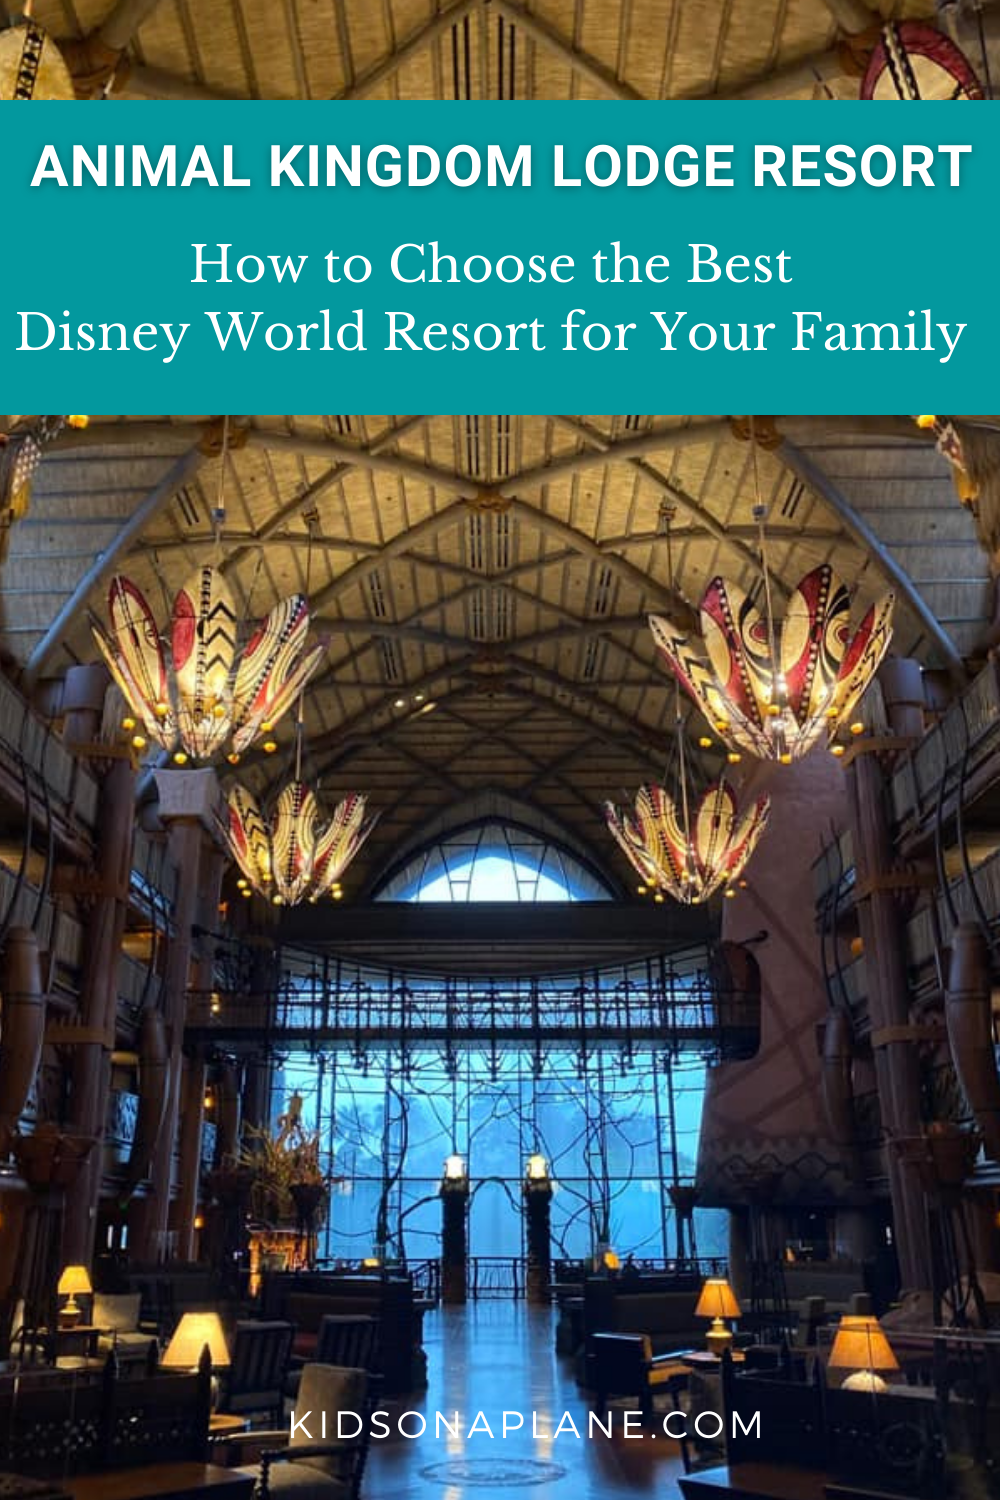 Animal Kingdom Lodge - How to Choose the Best Disney World Resort for Your Family